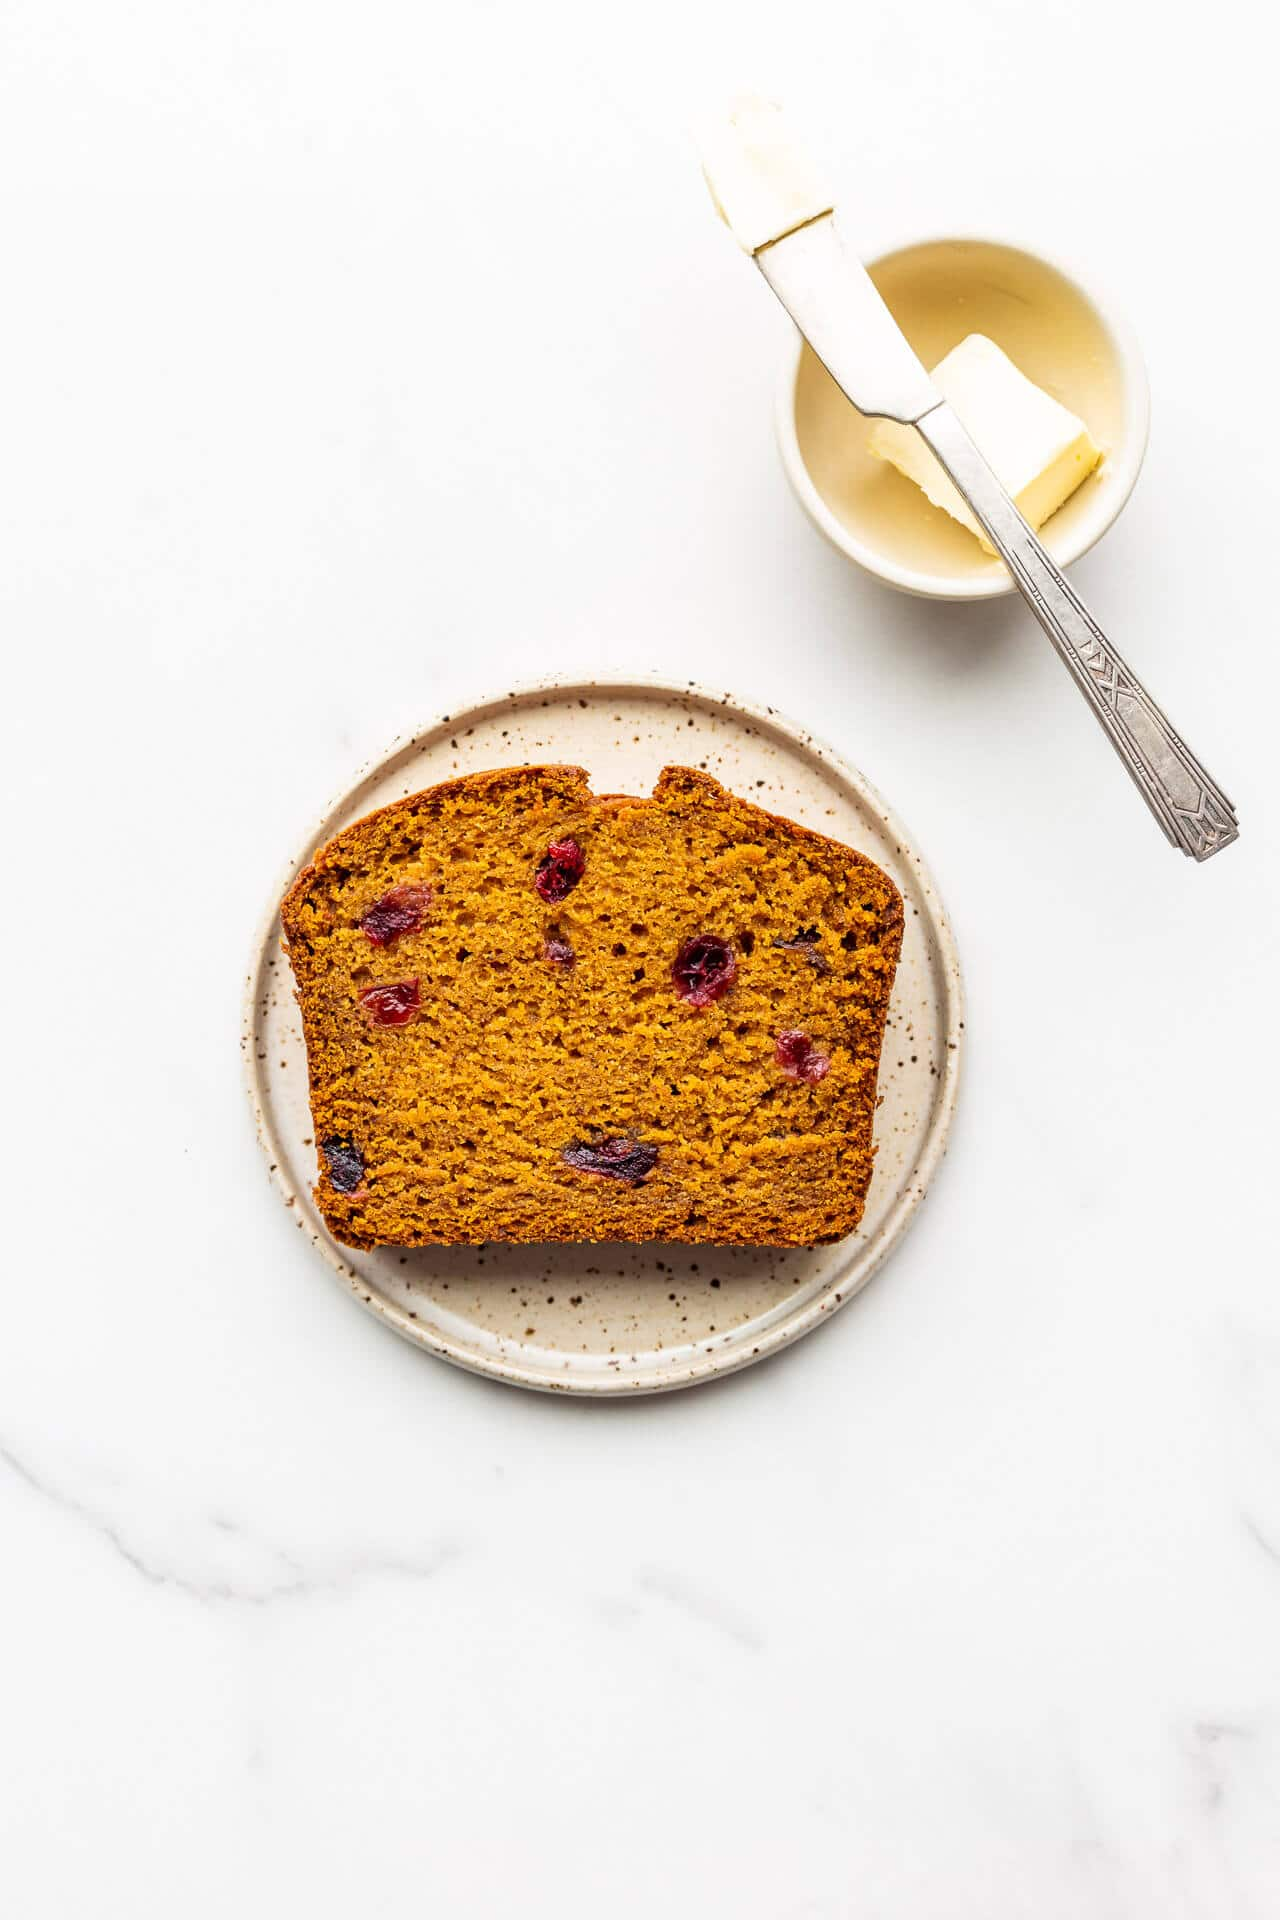 A slice of pumpkin cranberry bread on a speckled plate with a little bowl of butter and a knife